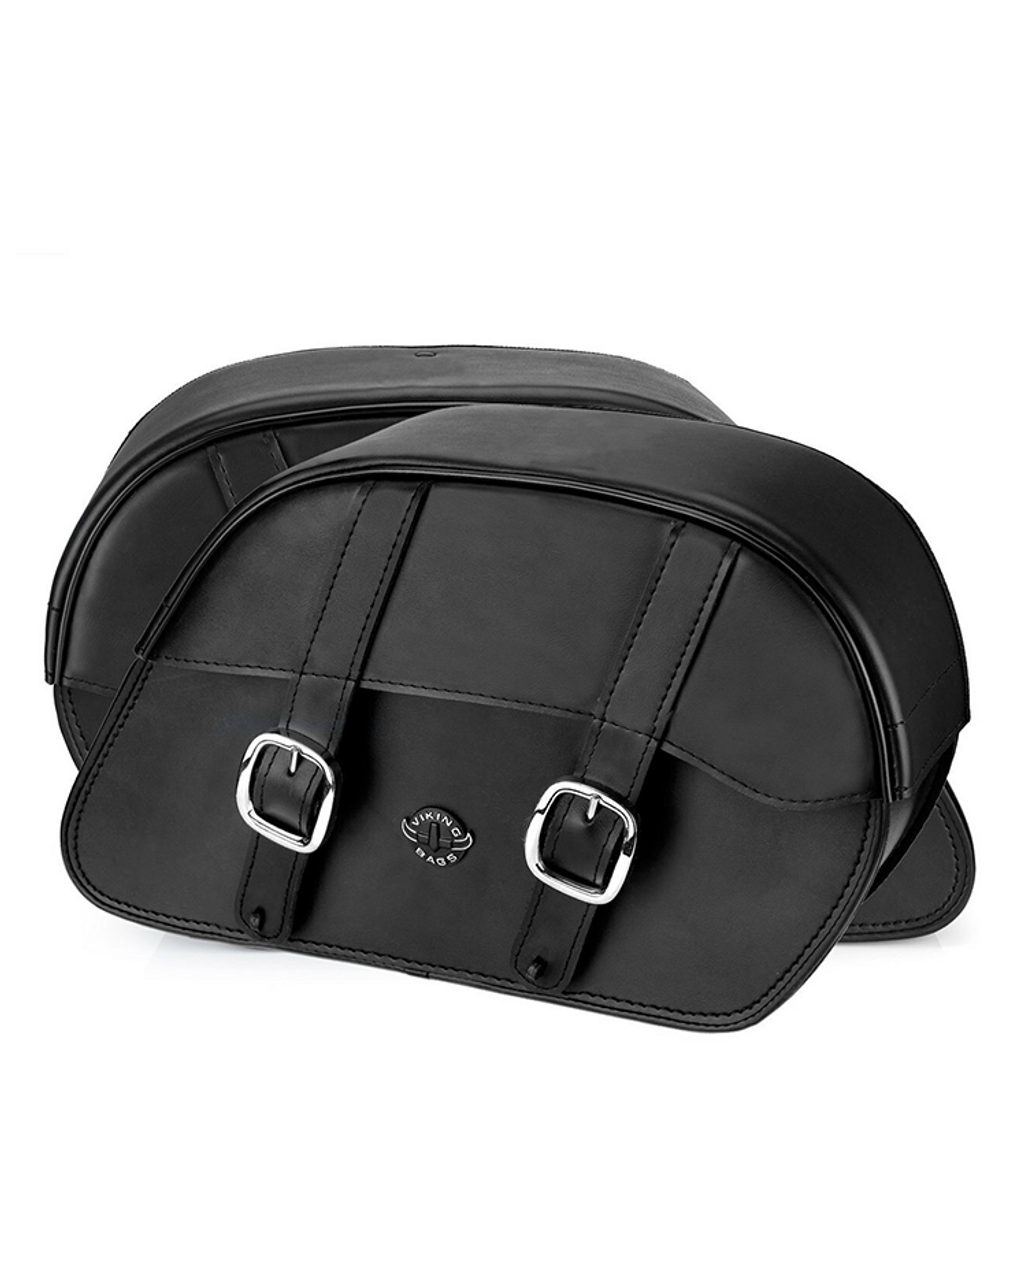 Viking Slanted Medium Motorcycle Saddlebags For Harley Softail Breakout Both Bags View